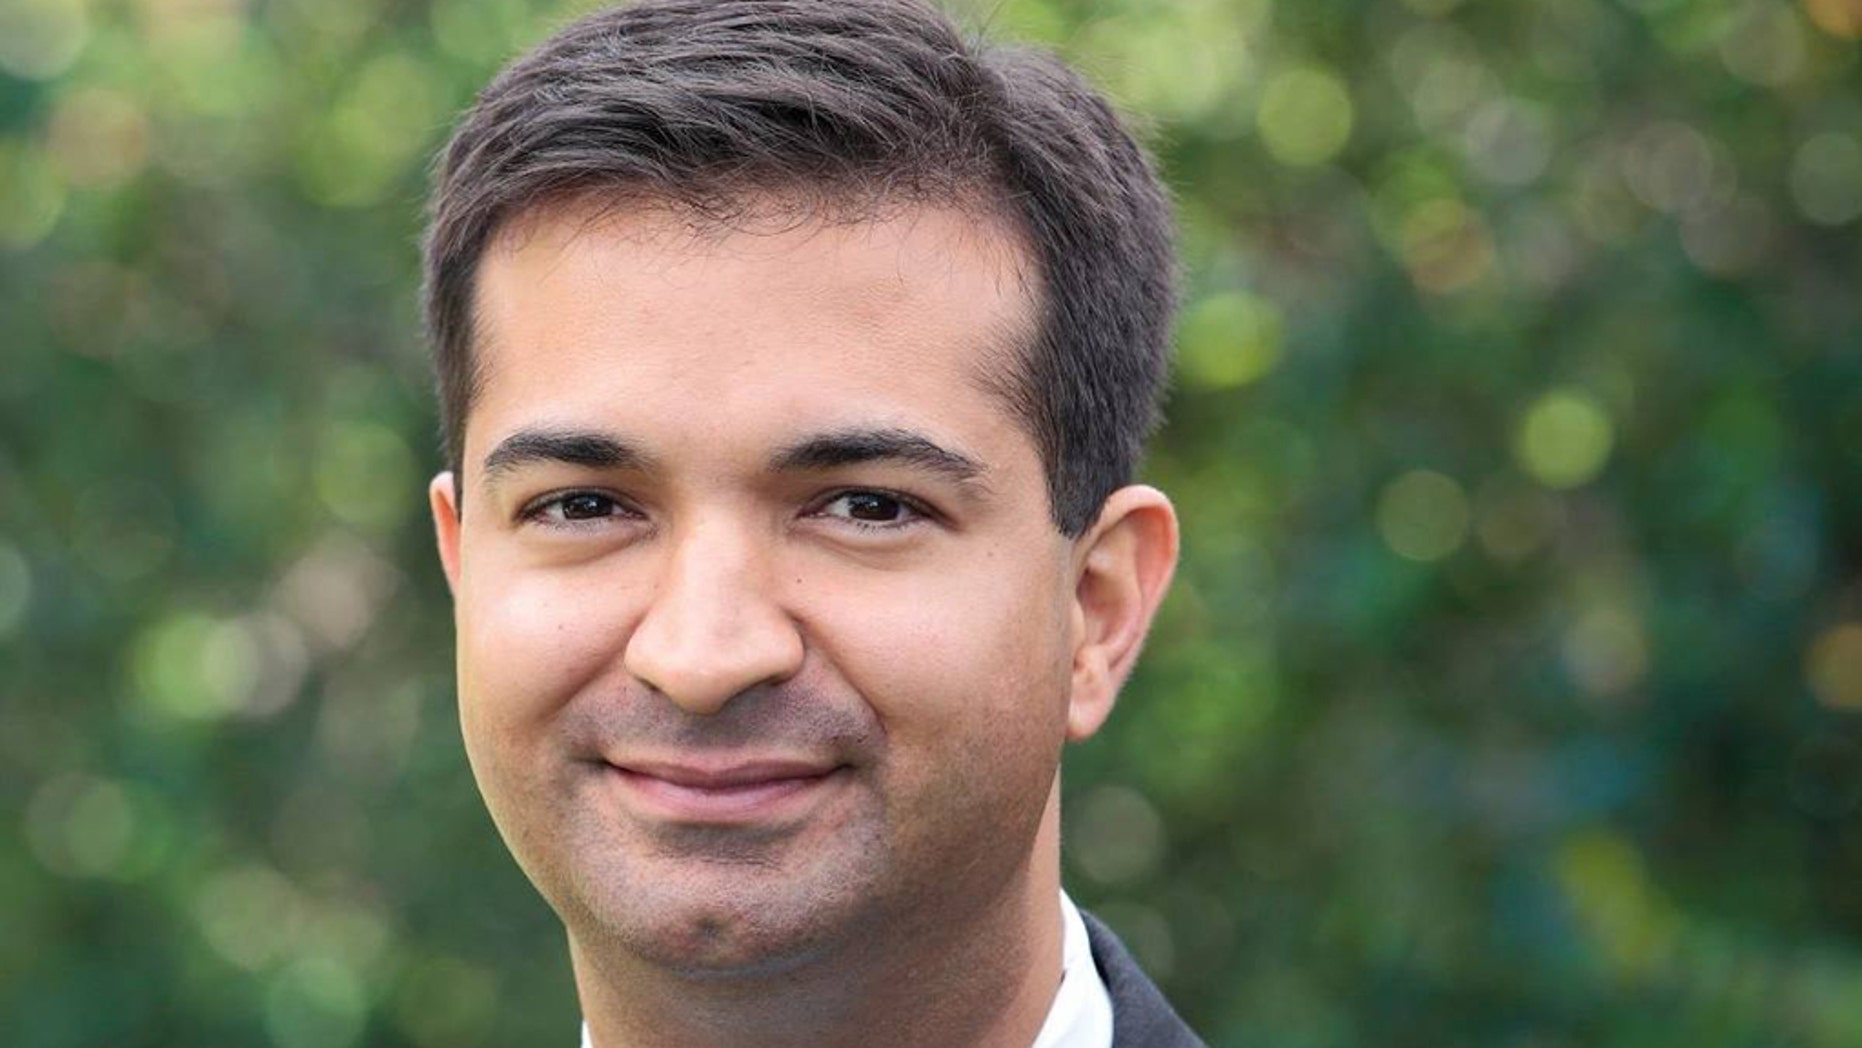 Florida Rep. Carlos Curbelo met with a 19-year-old who threatened to kill him and publicly forgave him.